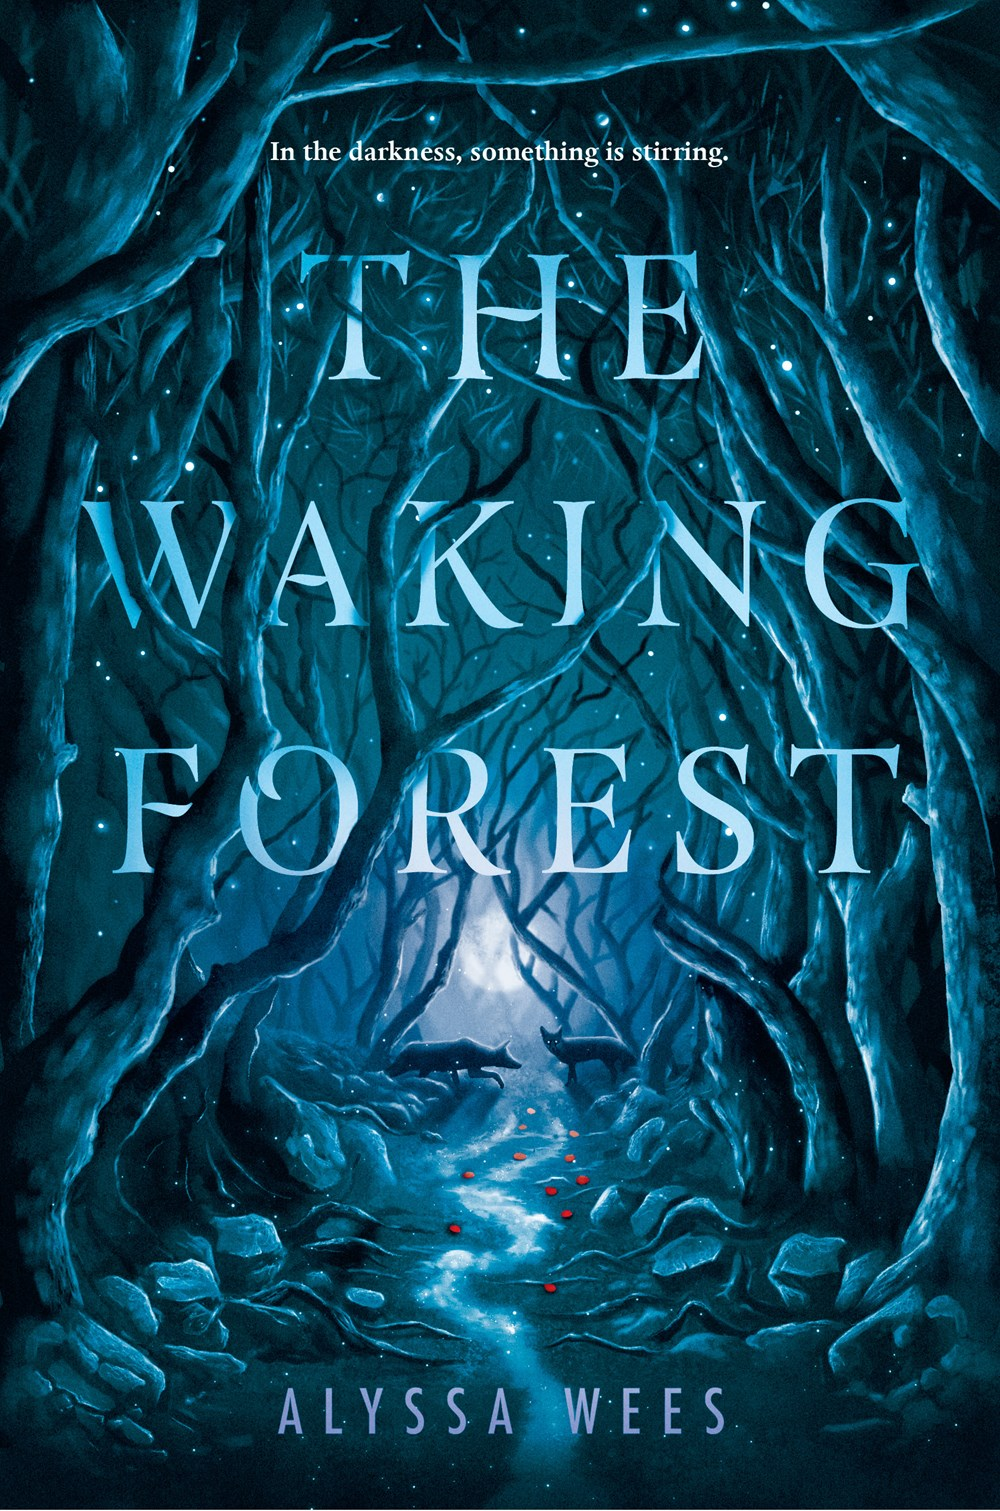 The Waking Forest by Alyssa Wees Book Cover